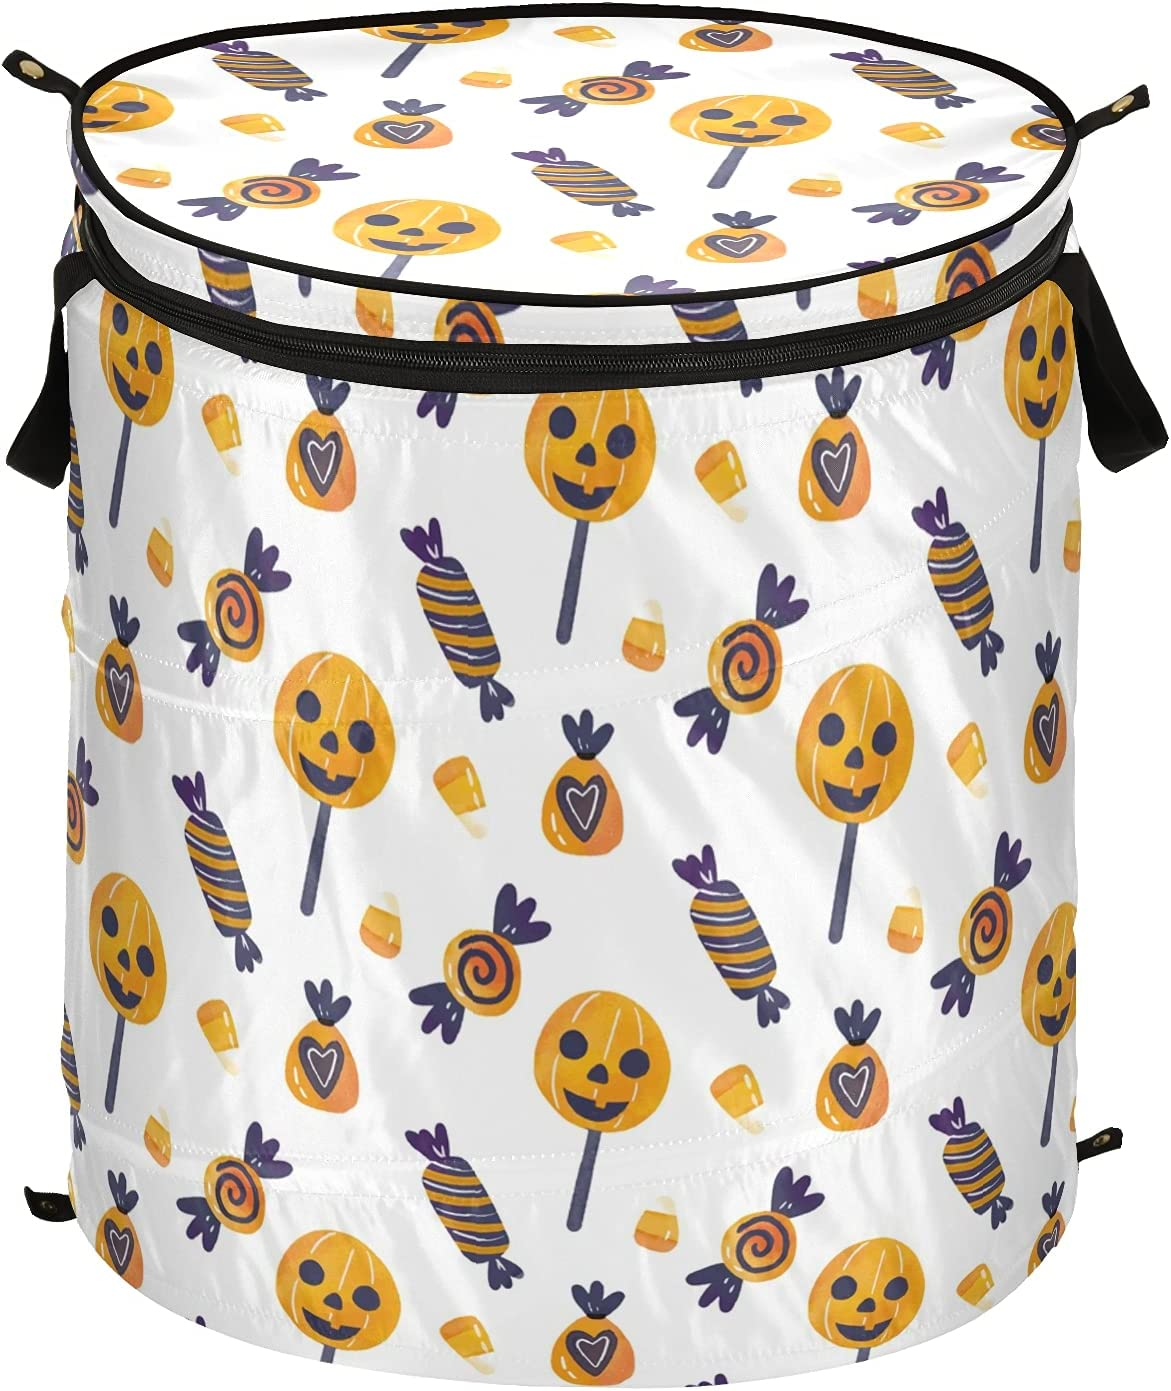 Happy Halloween Pumpkins Candy Pop Up Hamper Laundry with Lid Fo Sacramento Mall Max 69% OFF